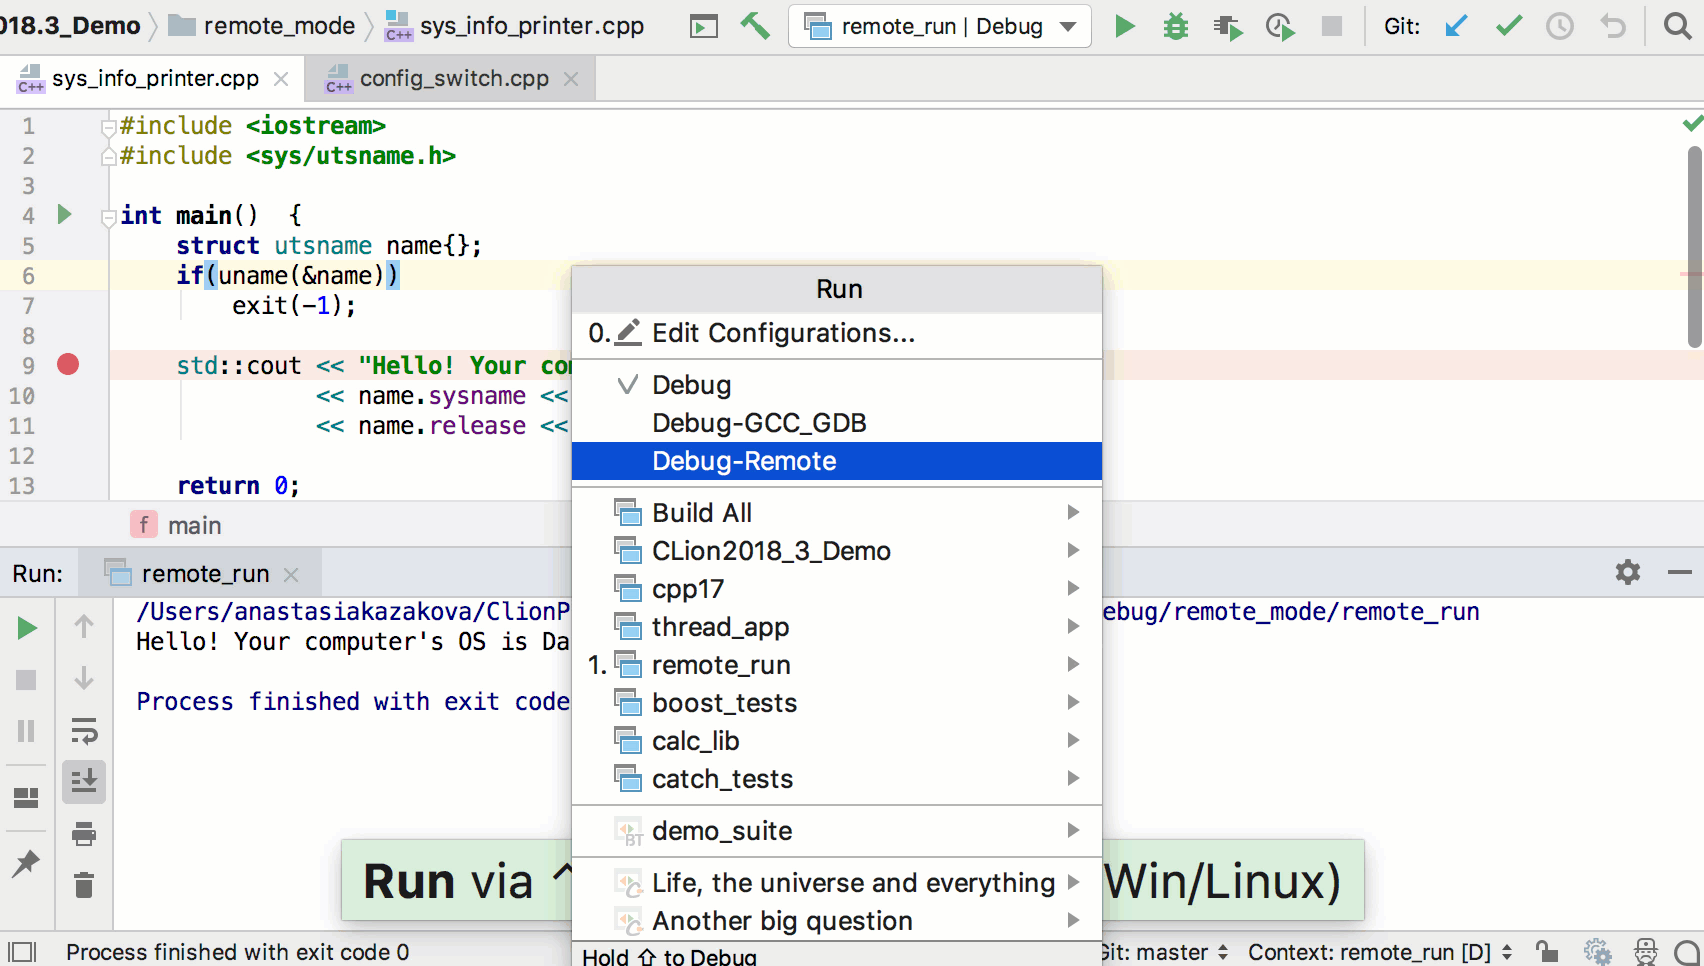 Run & Debug Configurations - Features | CLion